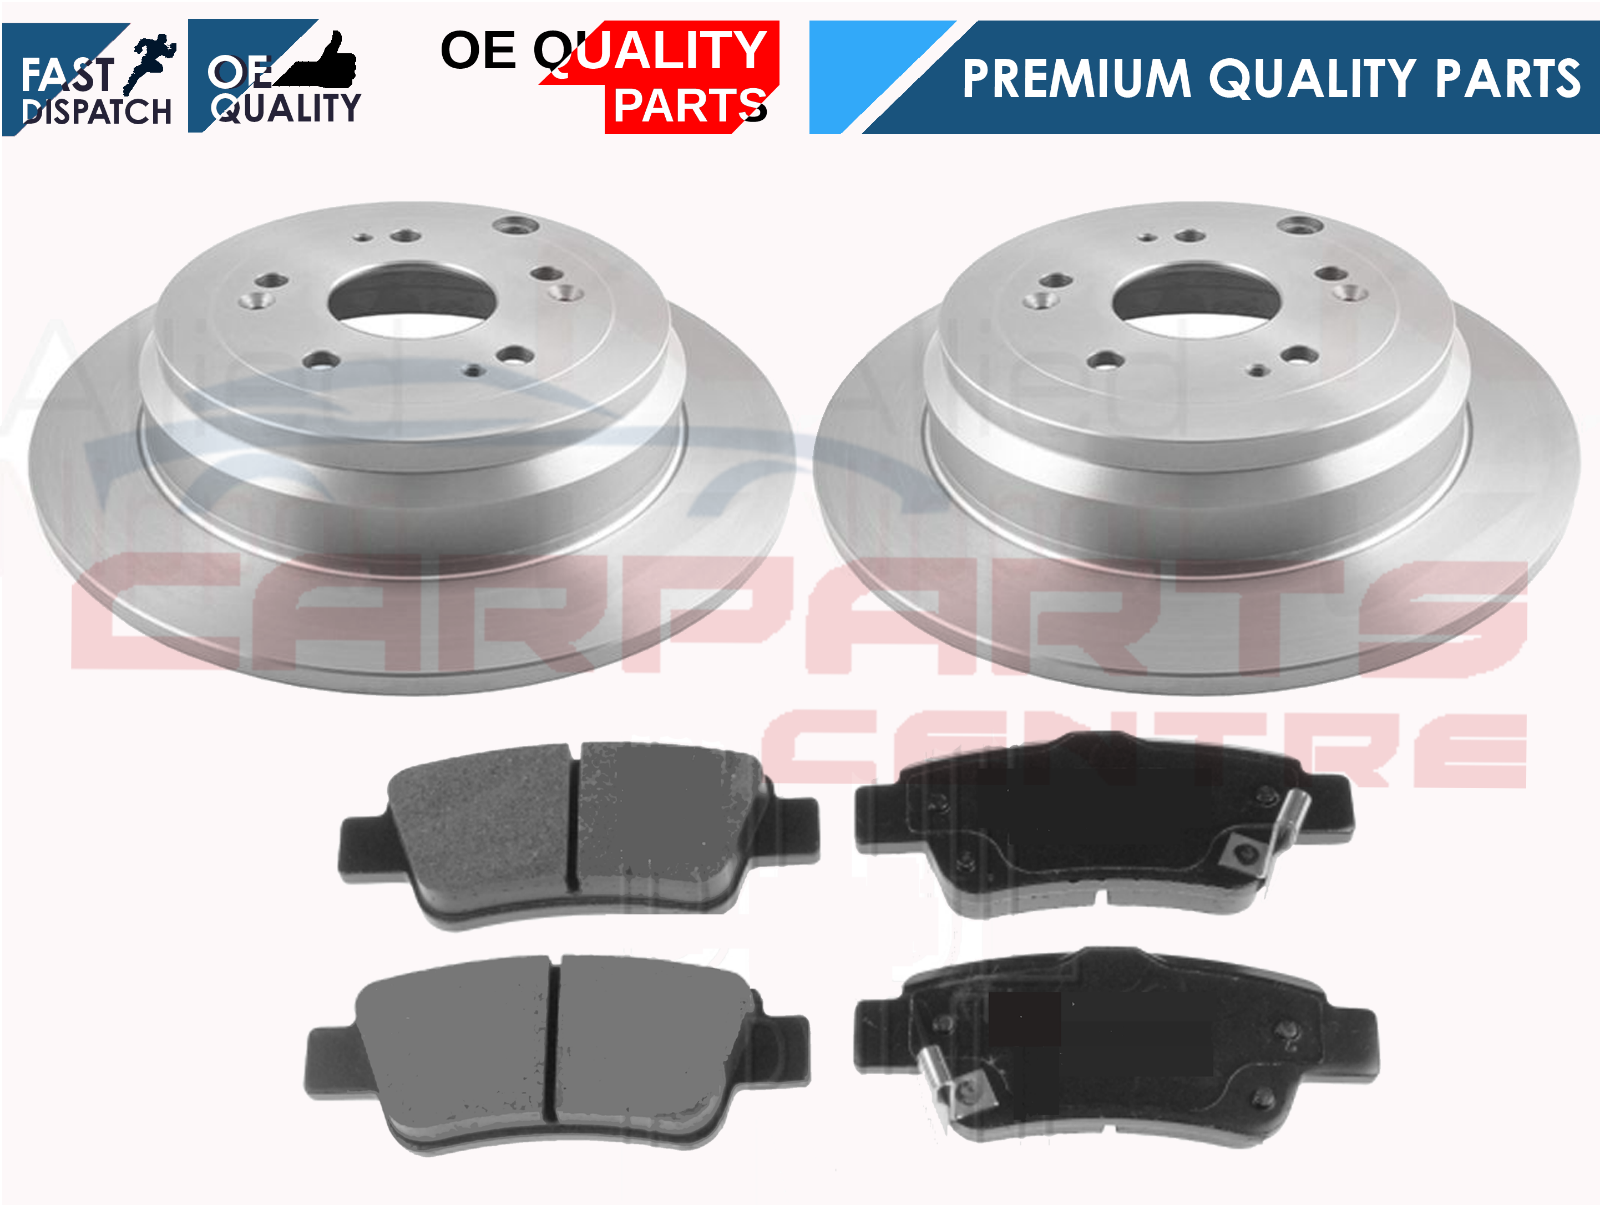 Fits Honda CR-V MK3 2.2 i-DTEC Genuine Mintex Rear Brake Pad Fitting Kit